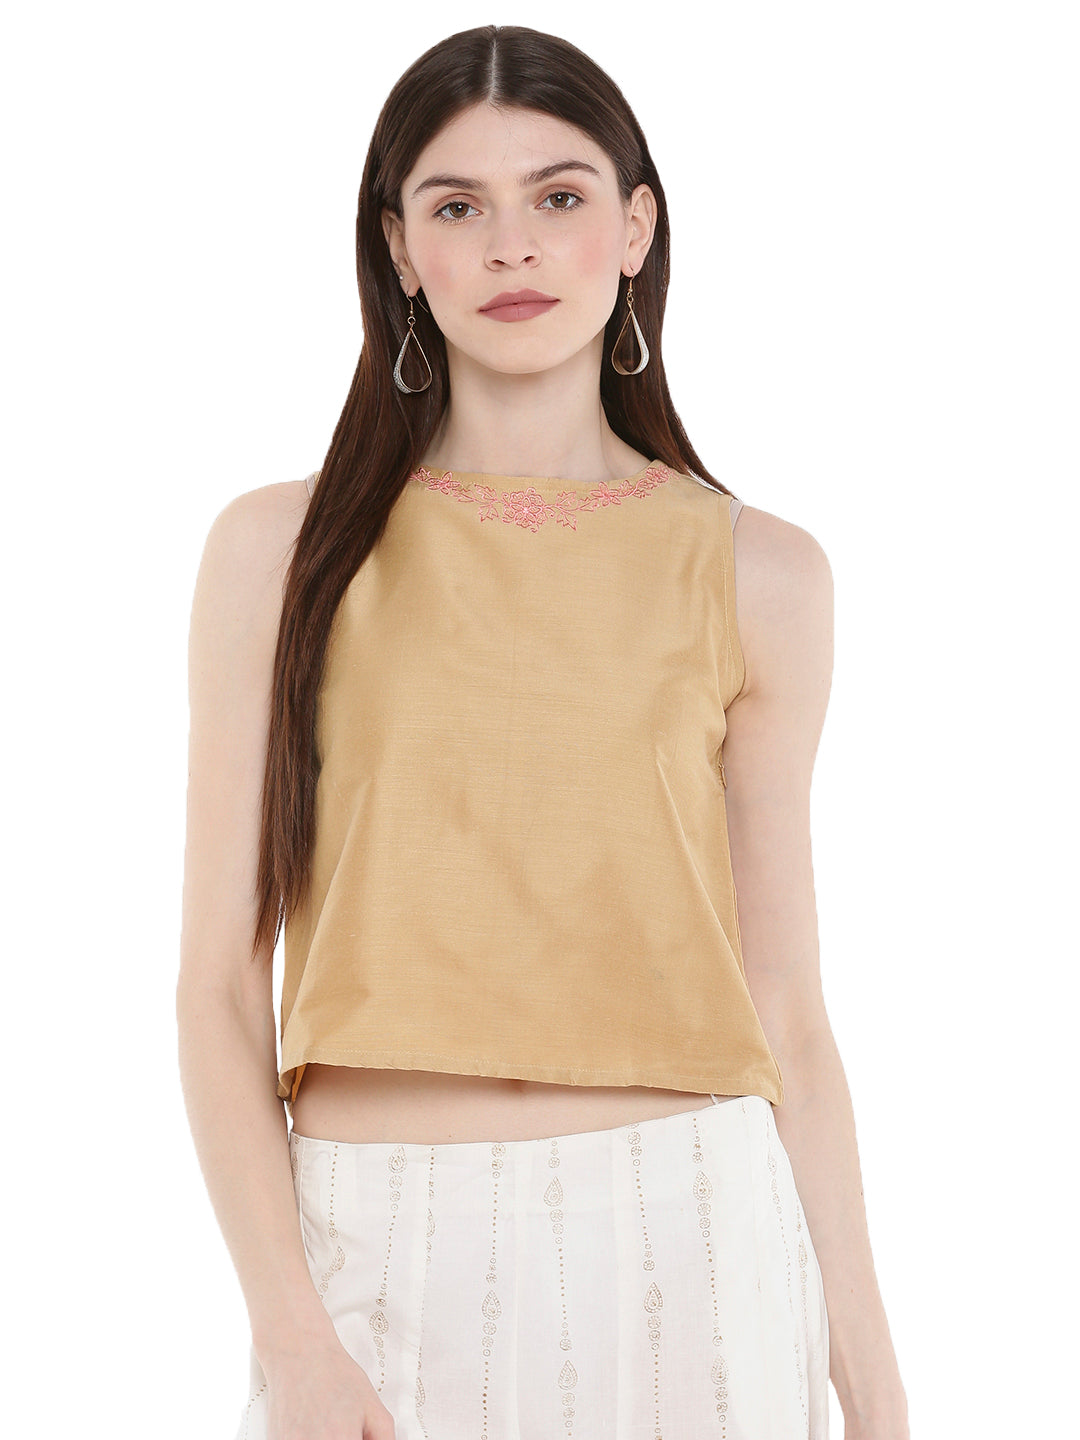 De Moza Ladies Embroidered Sleeveless Crop Top Gold - De Moza